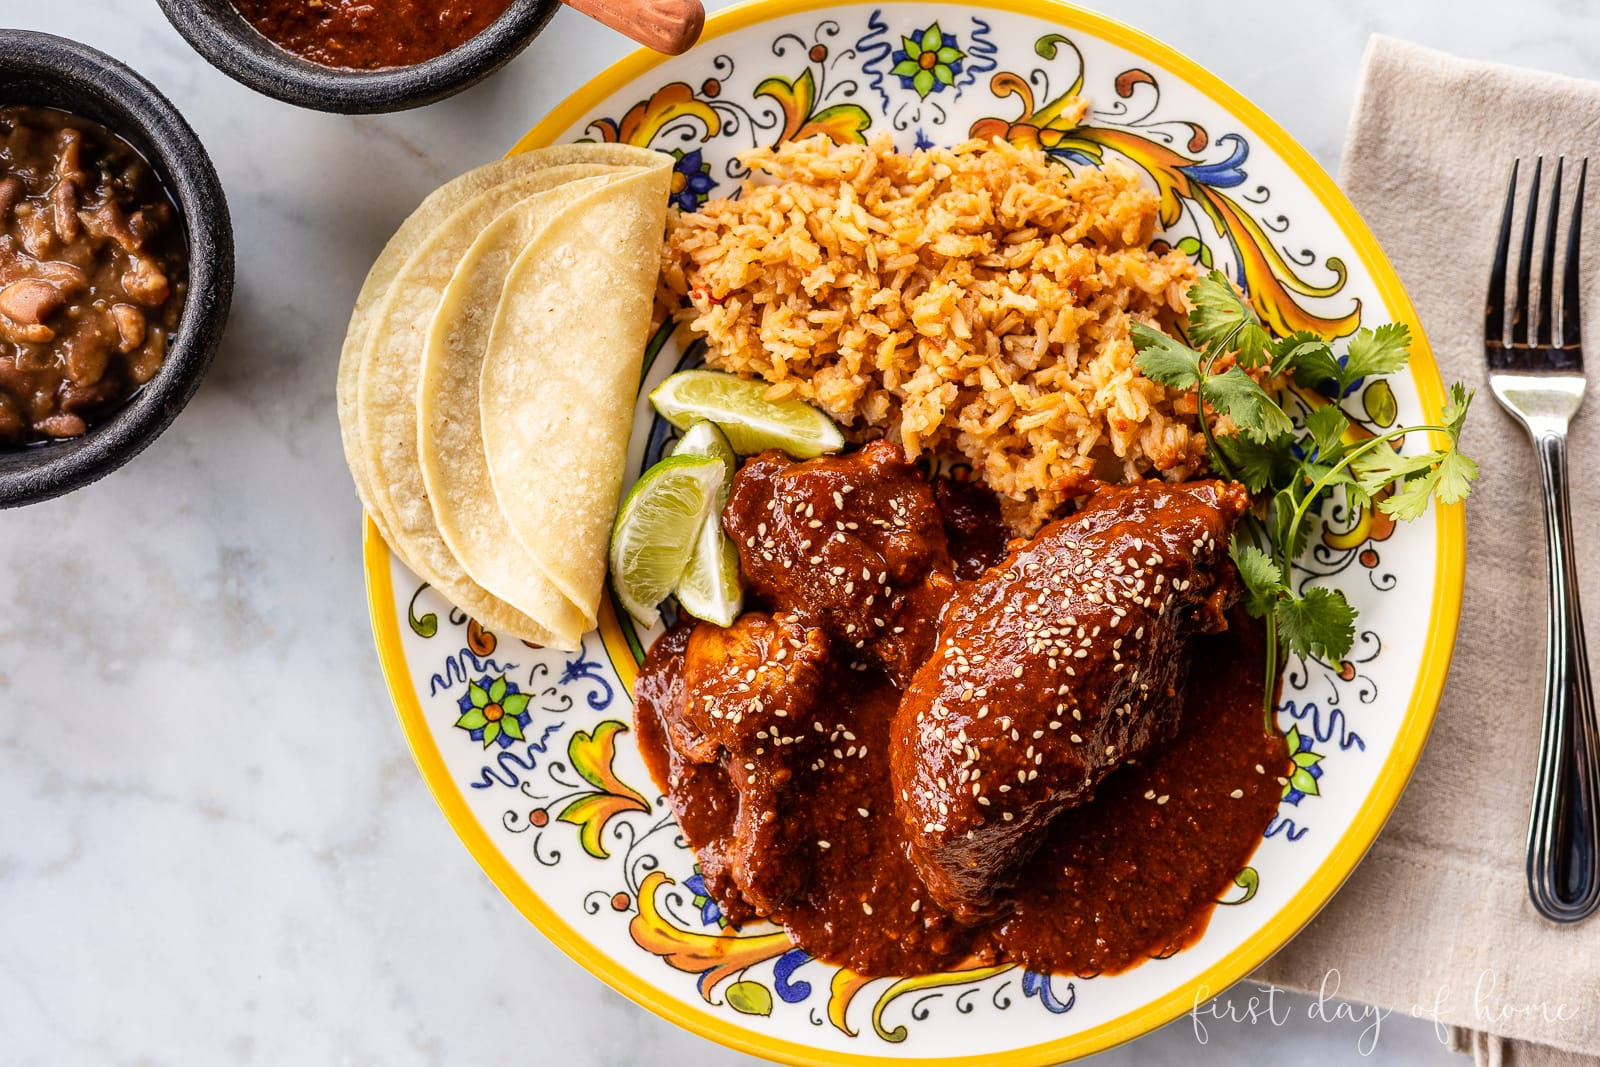 Chicken mole plate with corn tortillas and rice